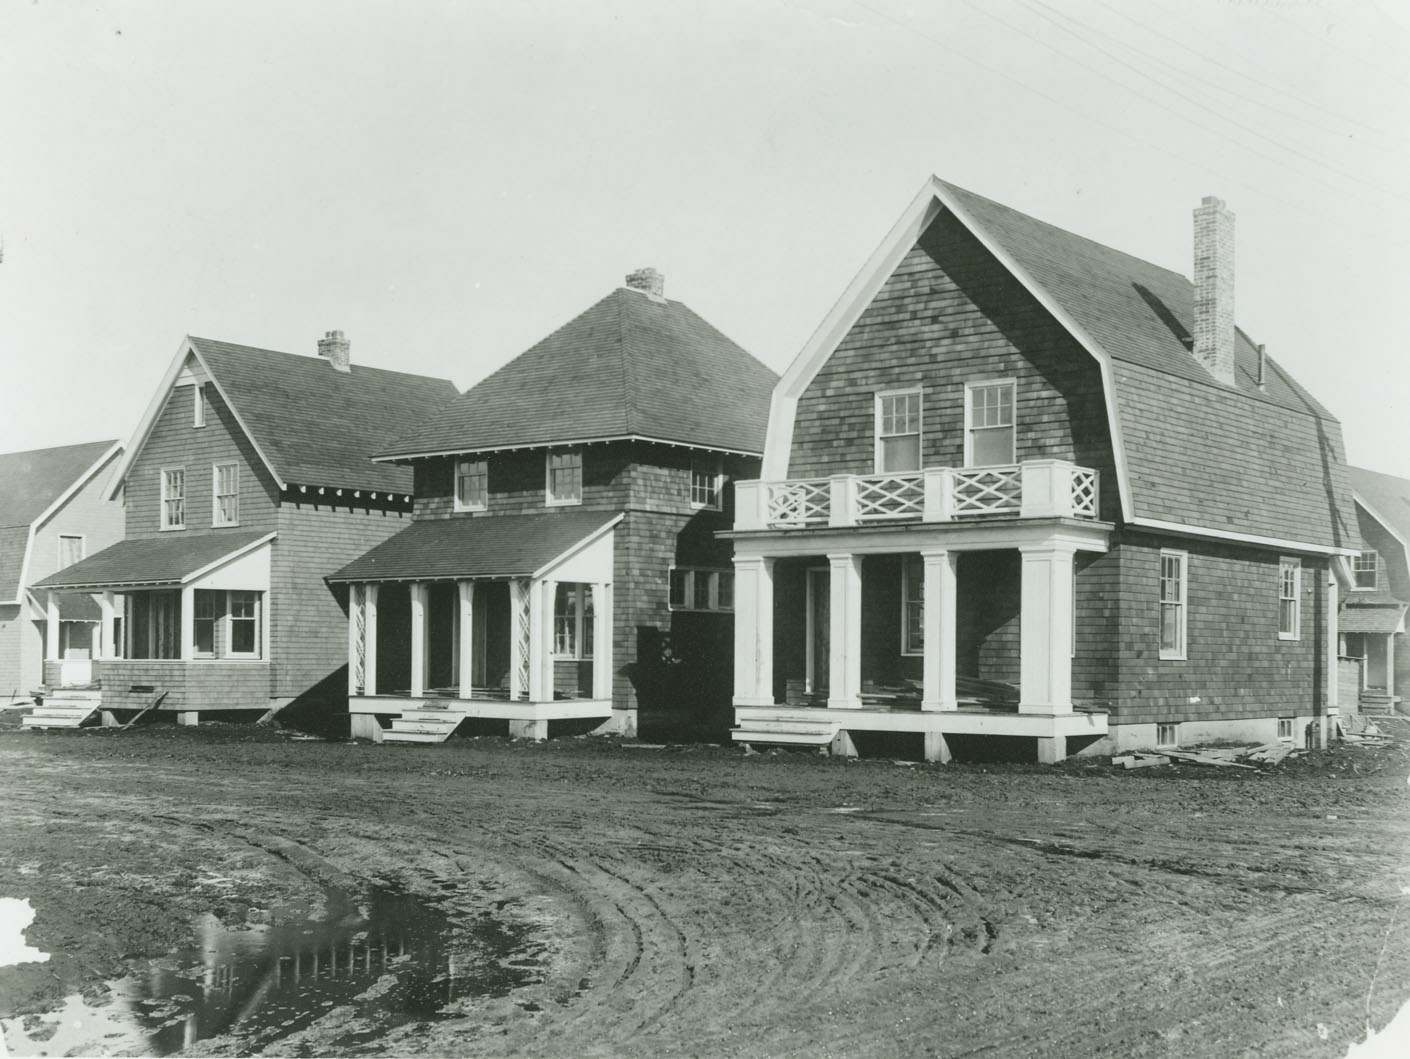 Thaddeus and Mary McTiernan's house, 783 (now 3107) Robie Street at corner of West Young, and adjacent Halifax Relief Commission houses nearing completion